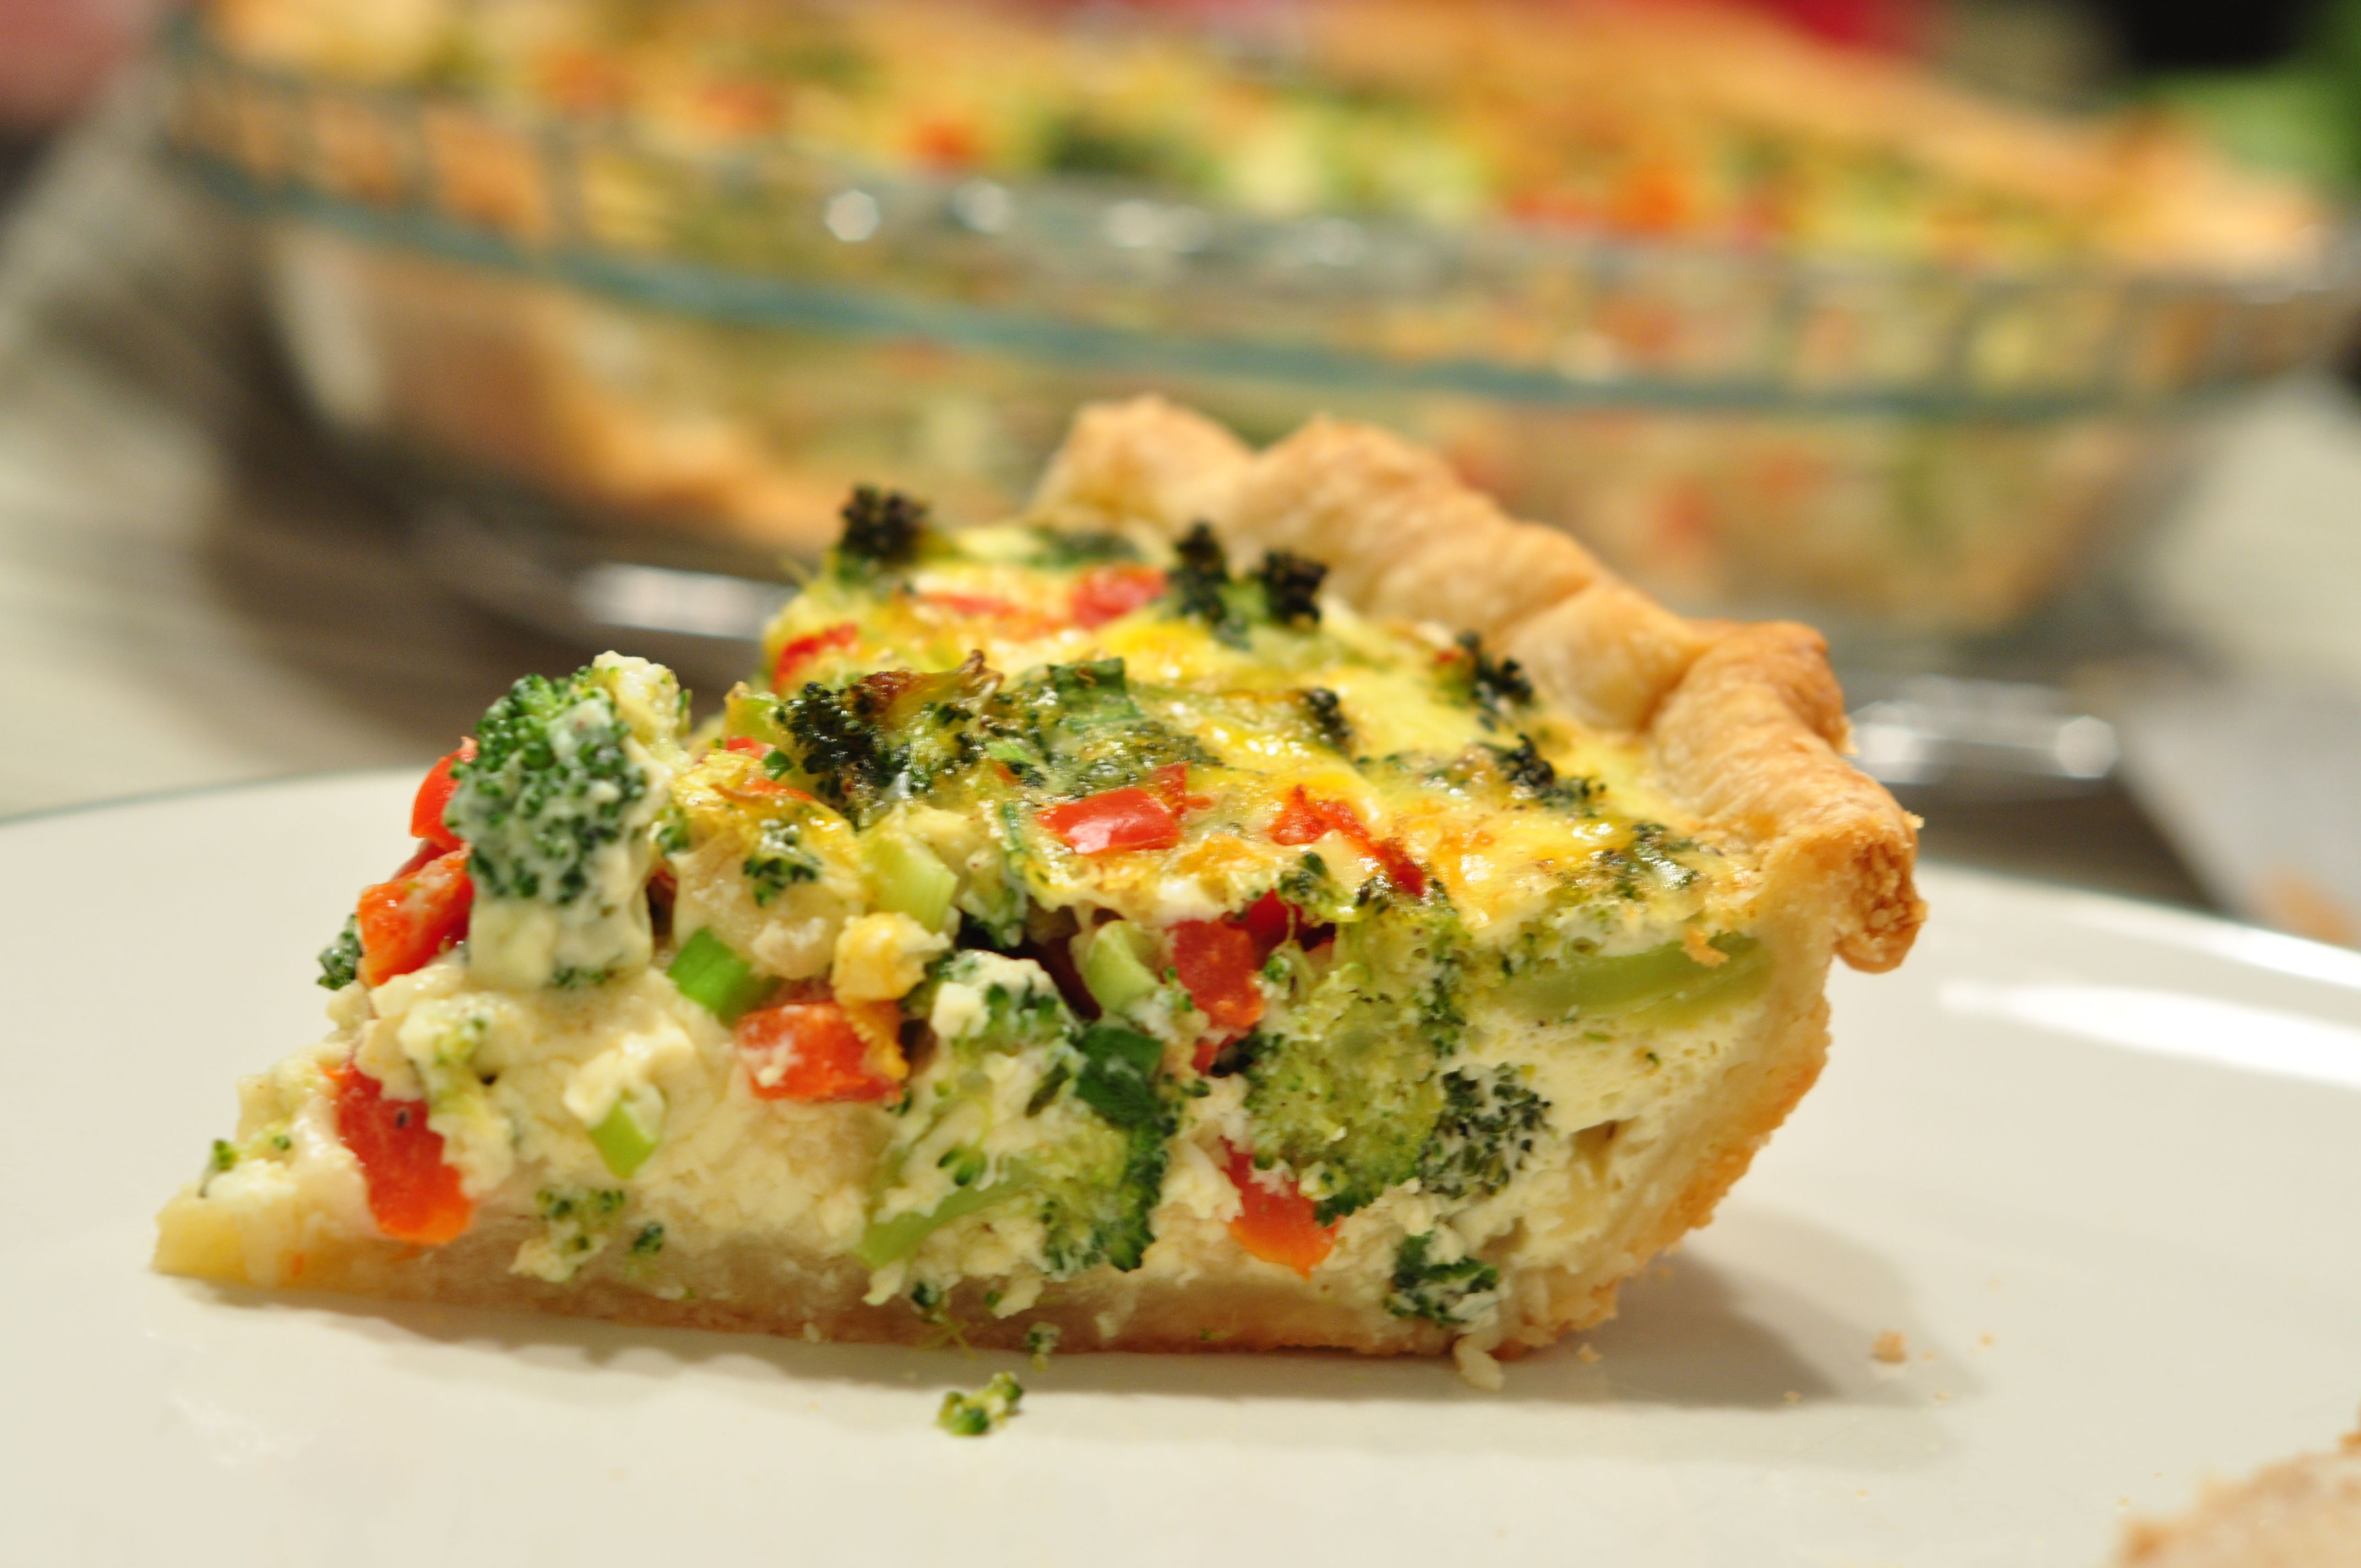 Christmas Quiche Healthy Christmas Recipes Vegetarian Christmas Recipes Clean Eating Holiday Recipes